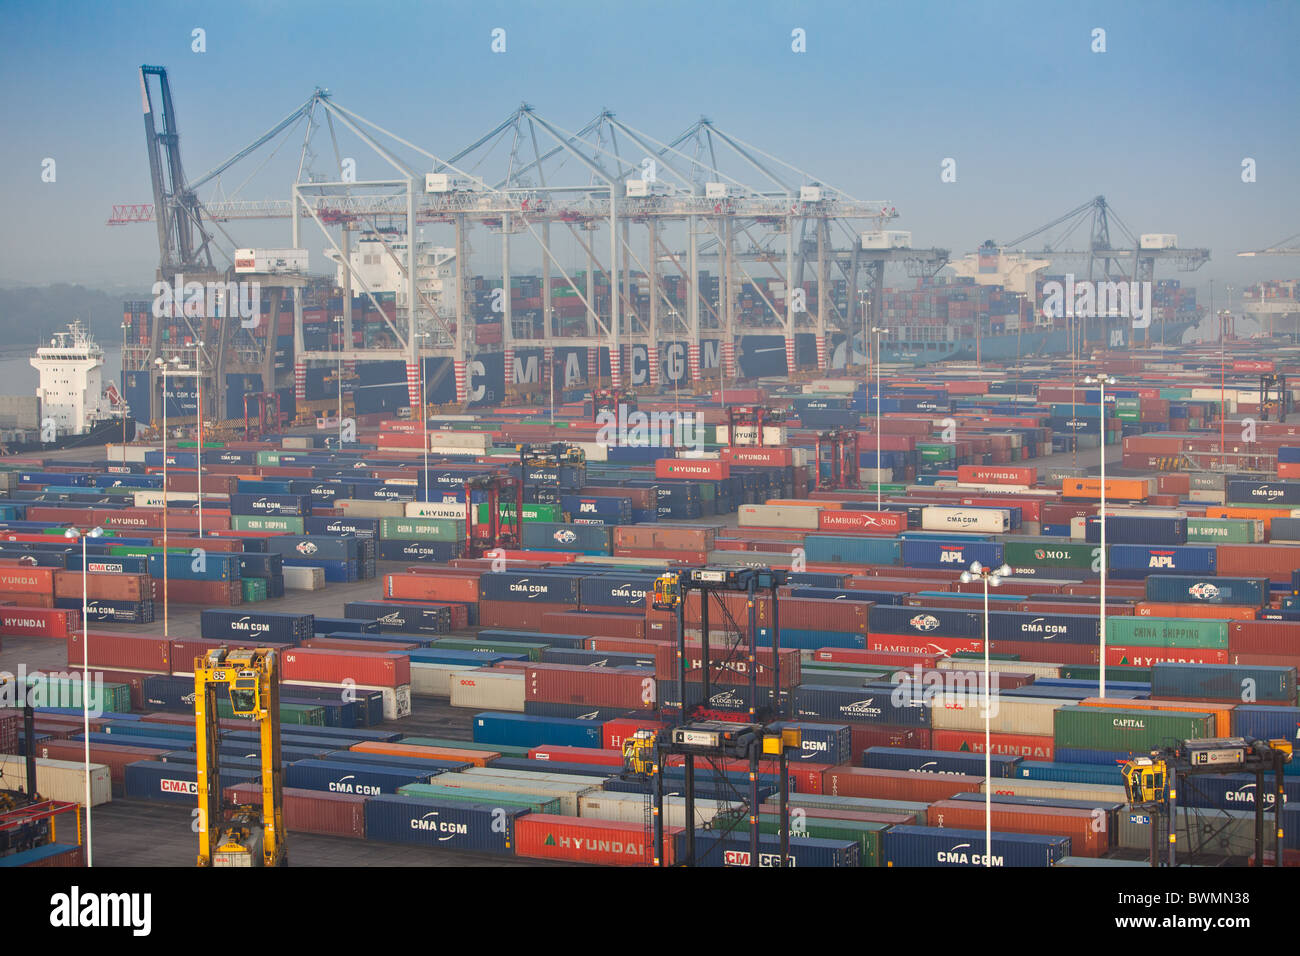 Southampton Docks and Container terminal - Stock Image